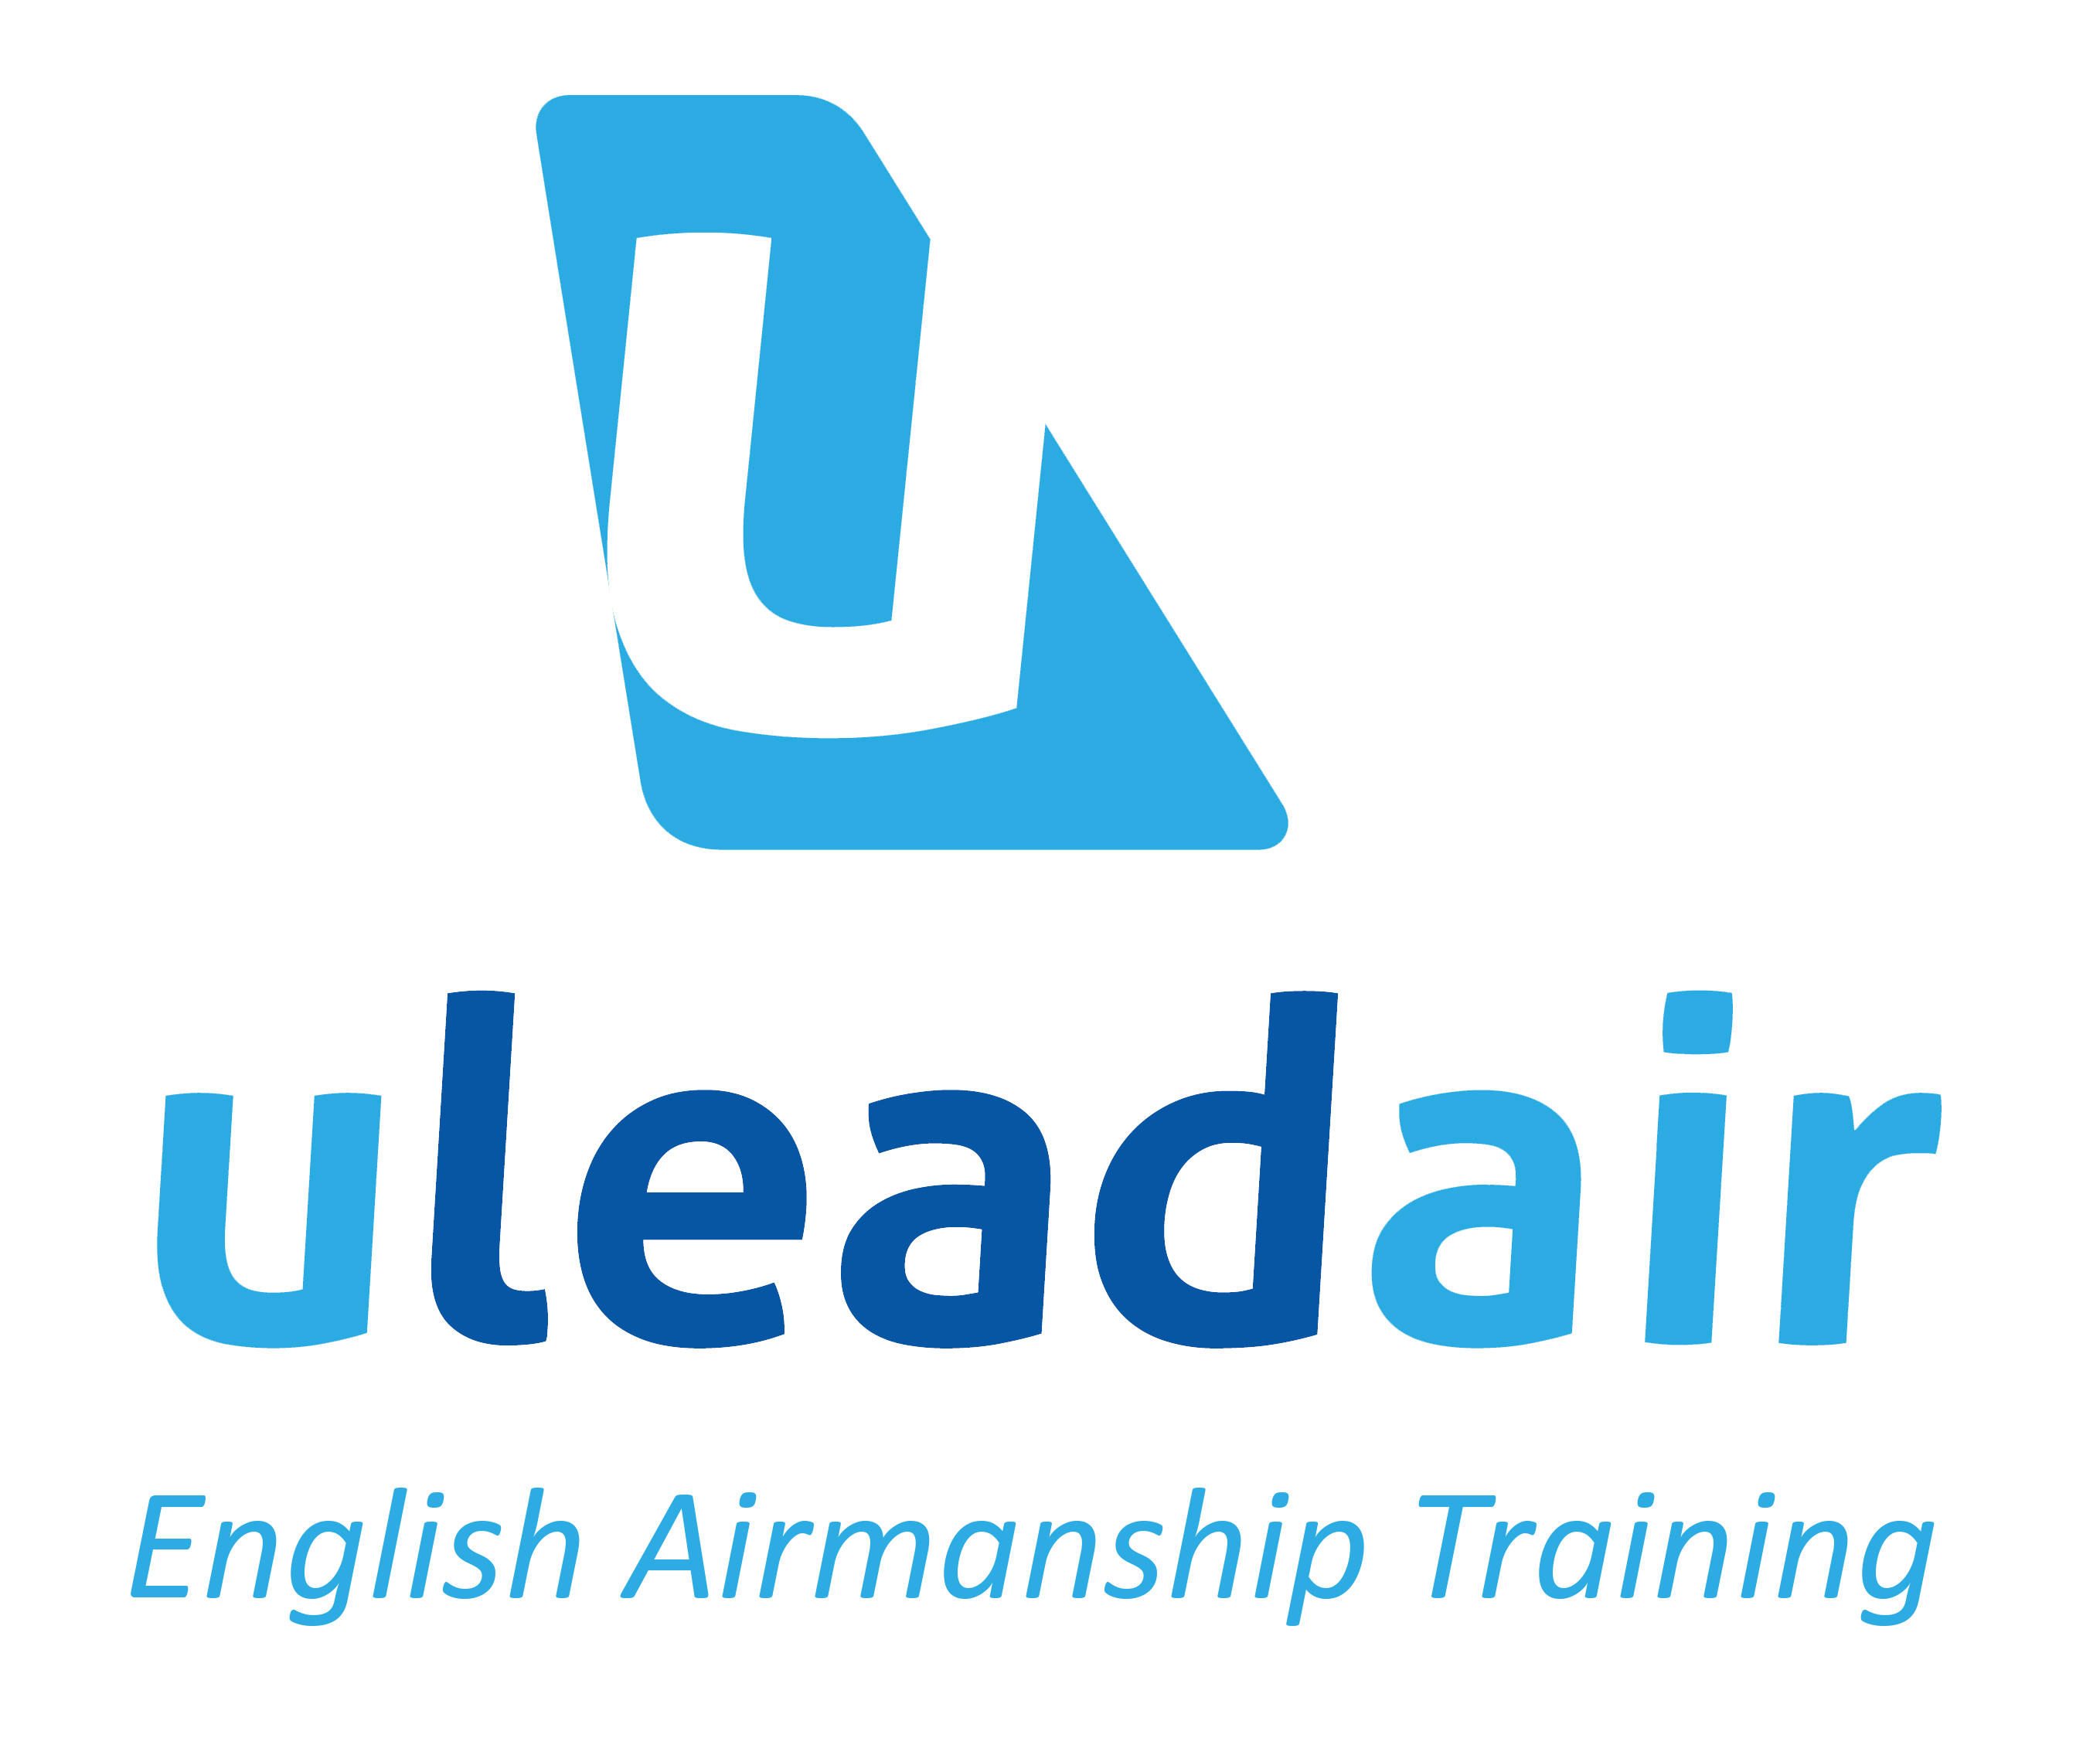 Uleadair Enflish Airmanship Training